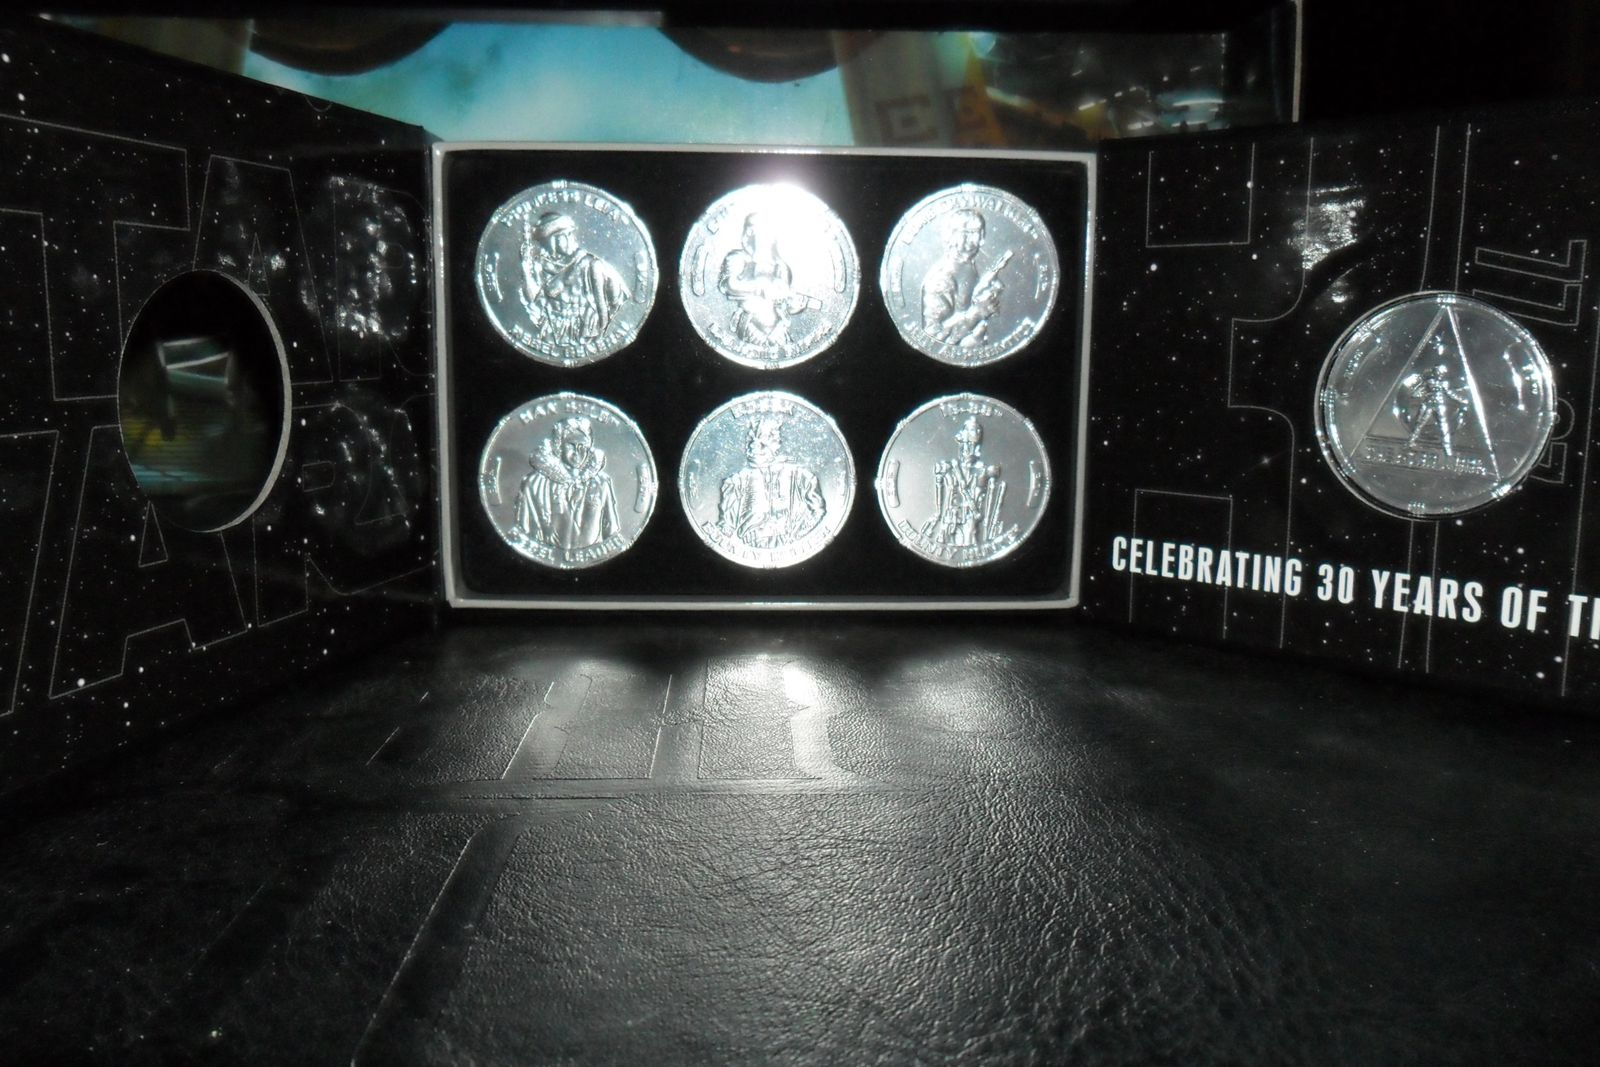 Collection n°182: janosolo kenner hasbro - Page 2 2007-vintage-coin-set-6-coins